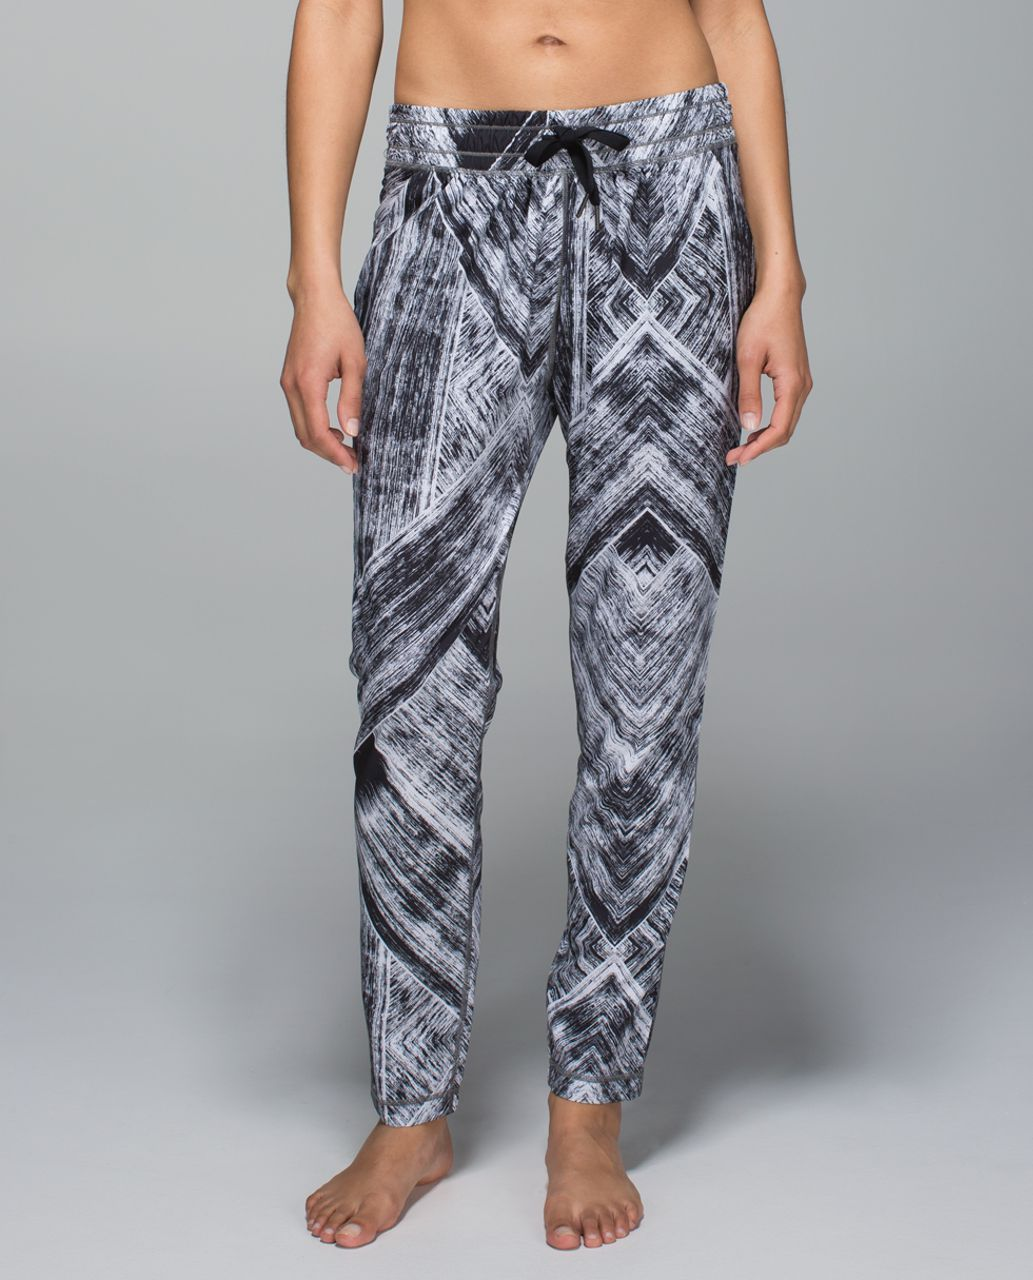 f275632267 Lululemon Namaskar Pant II - Heat Wave White Black | Lululemon ...